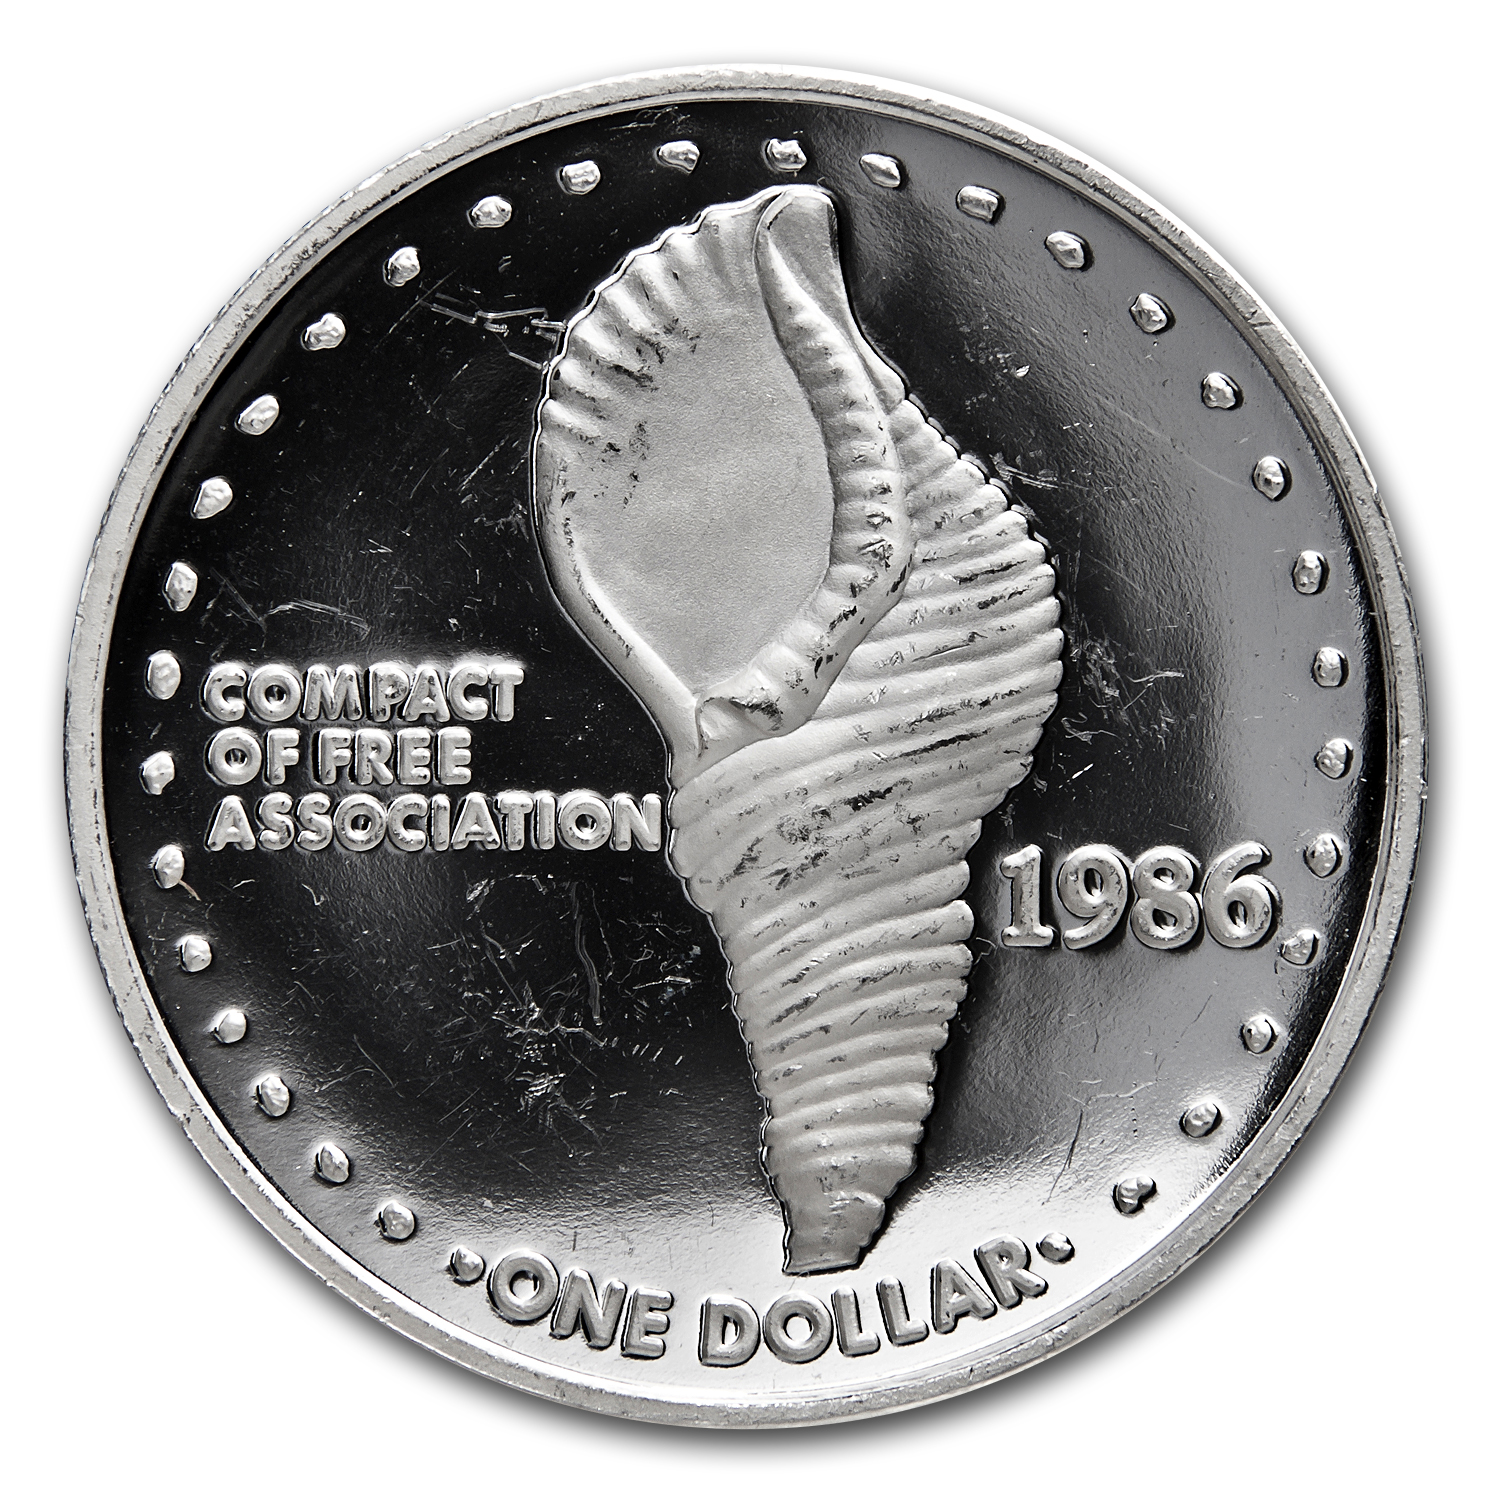 1986 Marshall Islands Silver One Dollar Proof